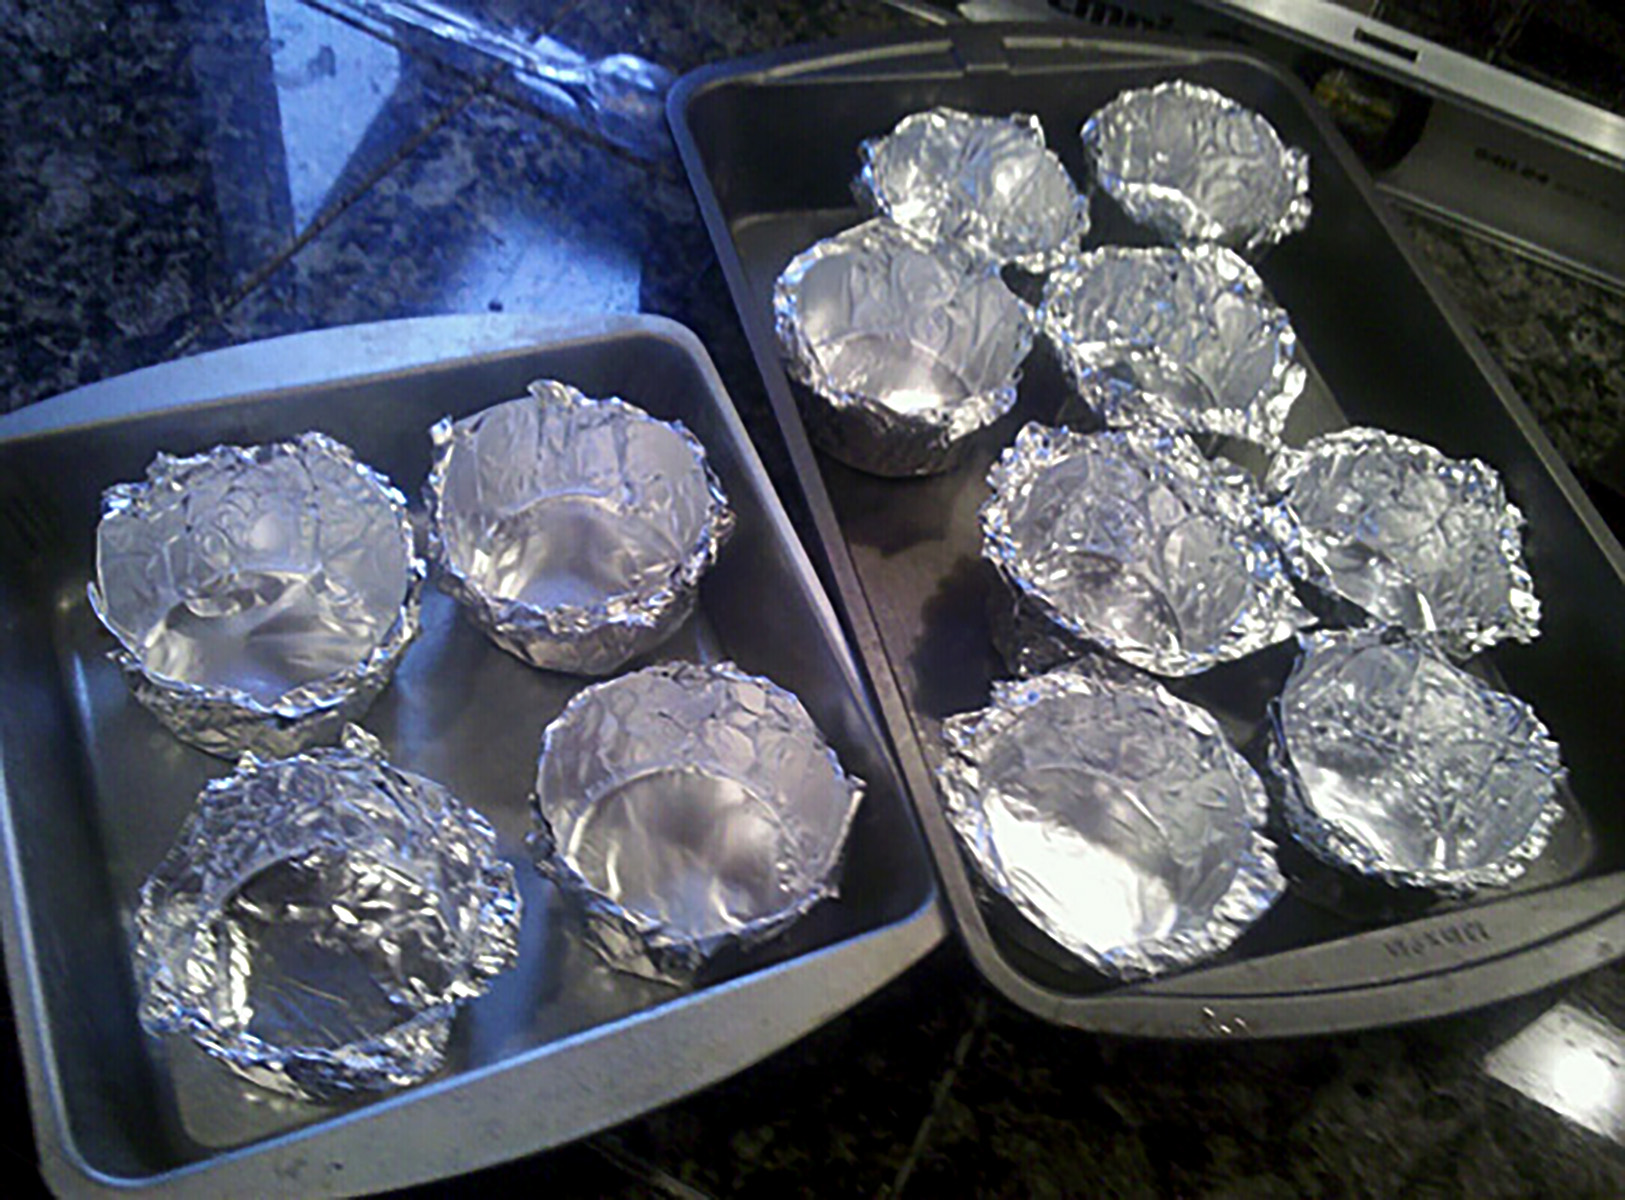 Homemade foil cuts, arranged in baking pans.